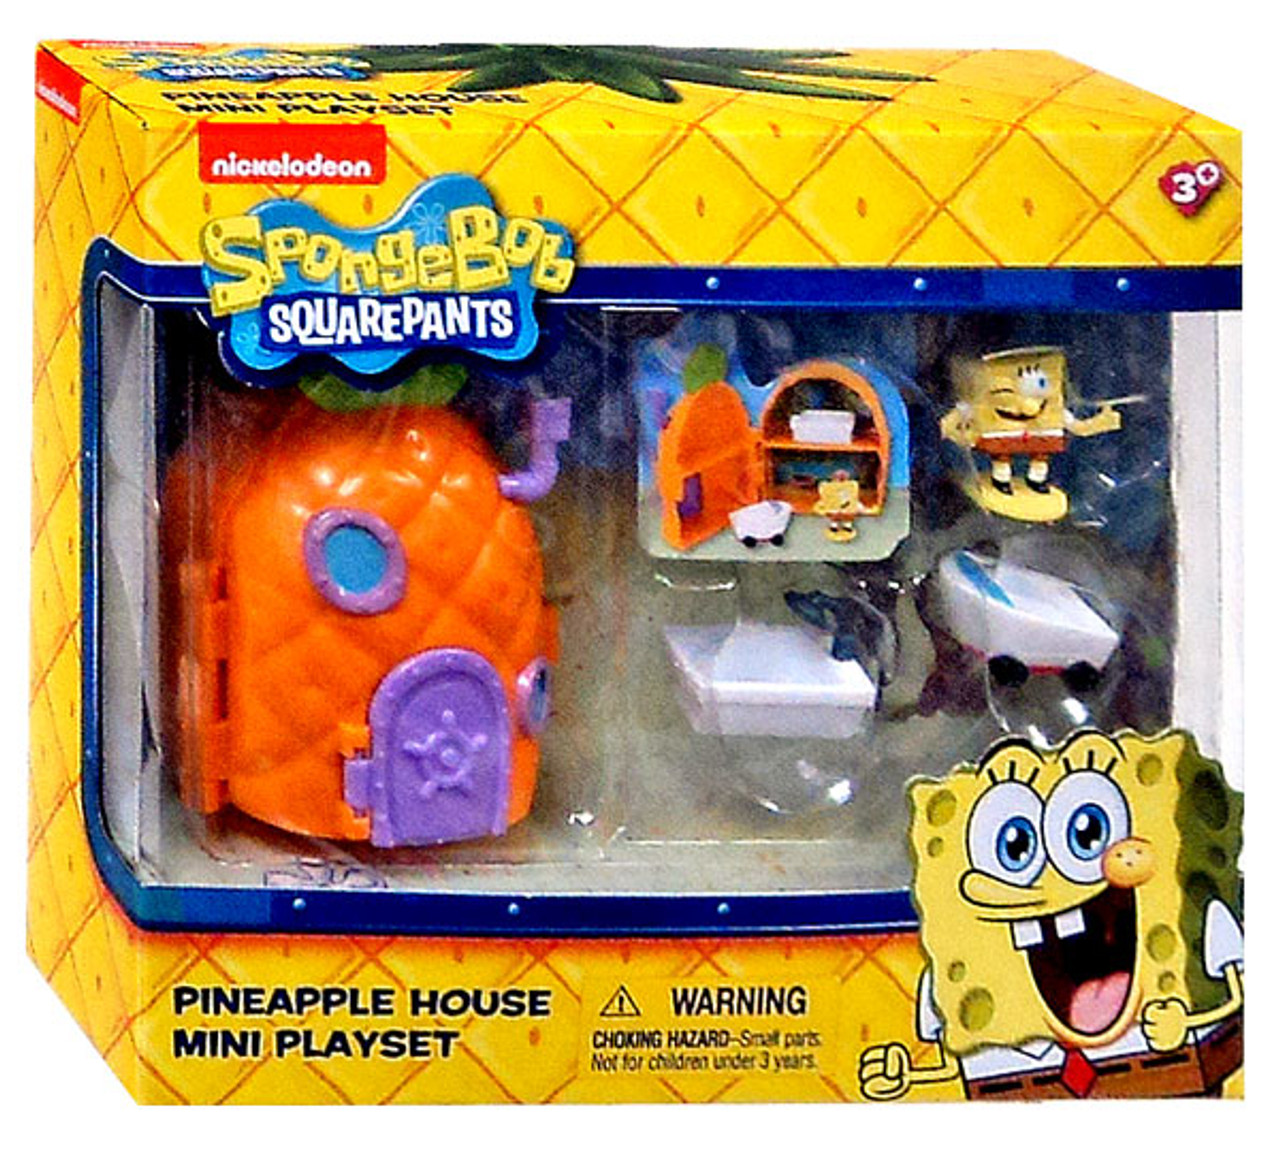 Spongebob Squarepants Pineapple House Mini Playset Just